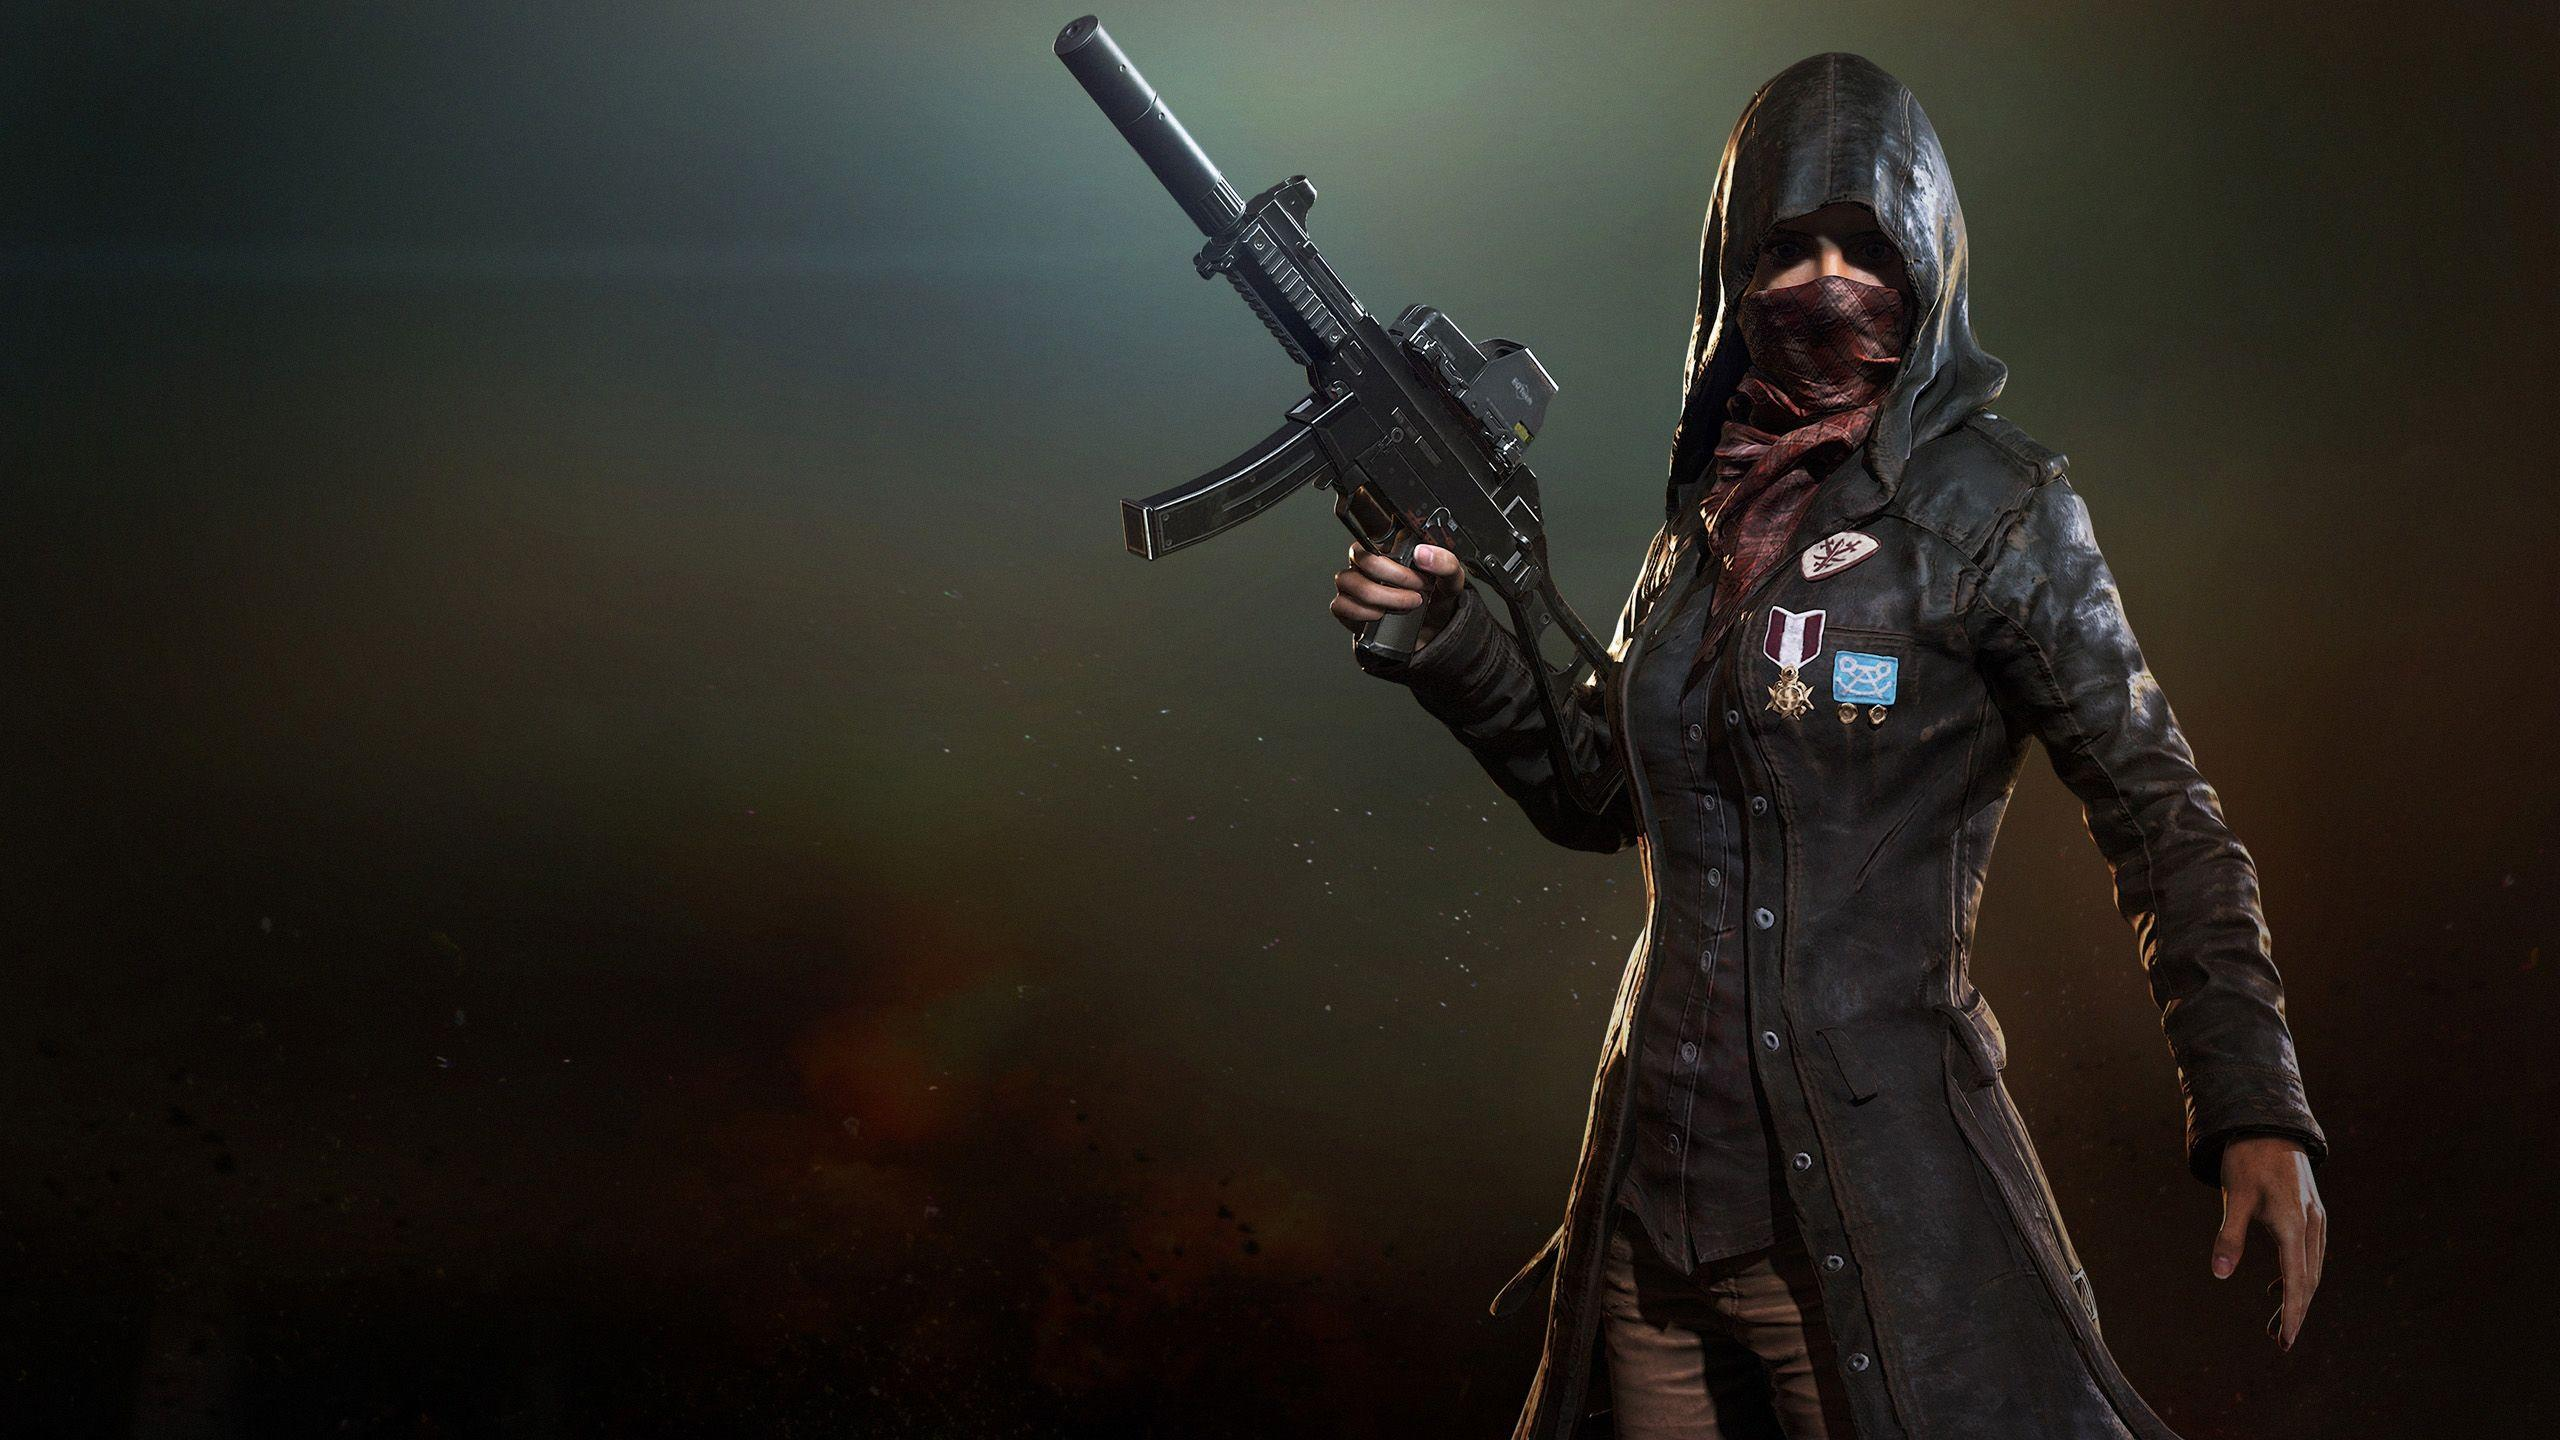 Wallpapers Playerunknown's Battlegrounds, Hoodie, Pubg, Coat